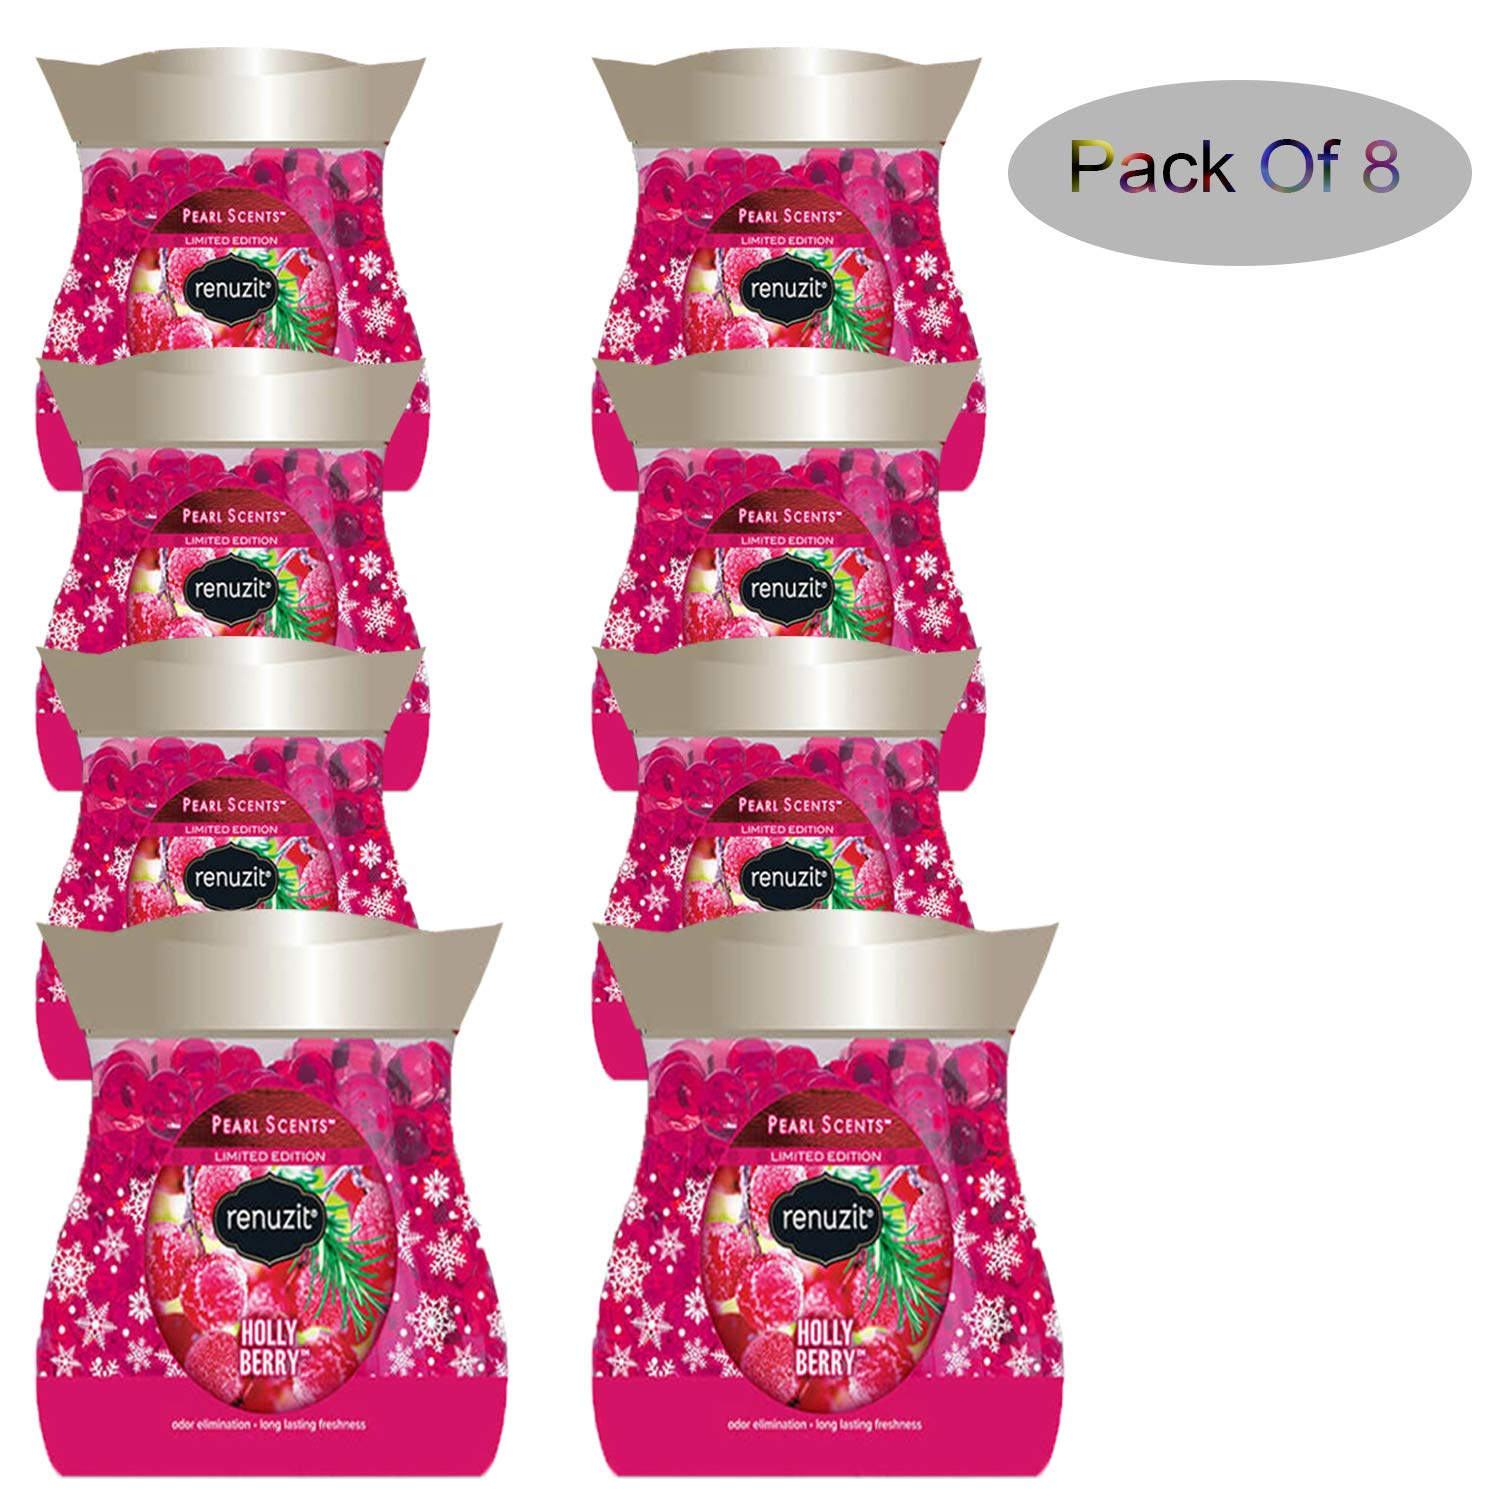 Renuzit Holly Berry Pearl Scents Air Freshener Limited Edition (Pack of 8) by Renuzit